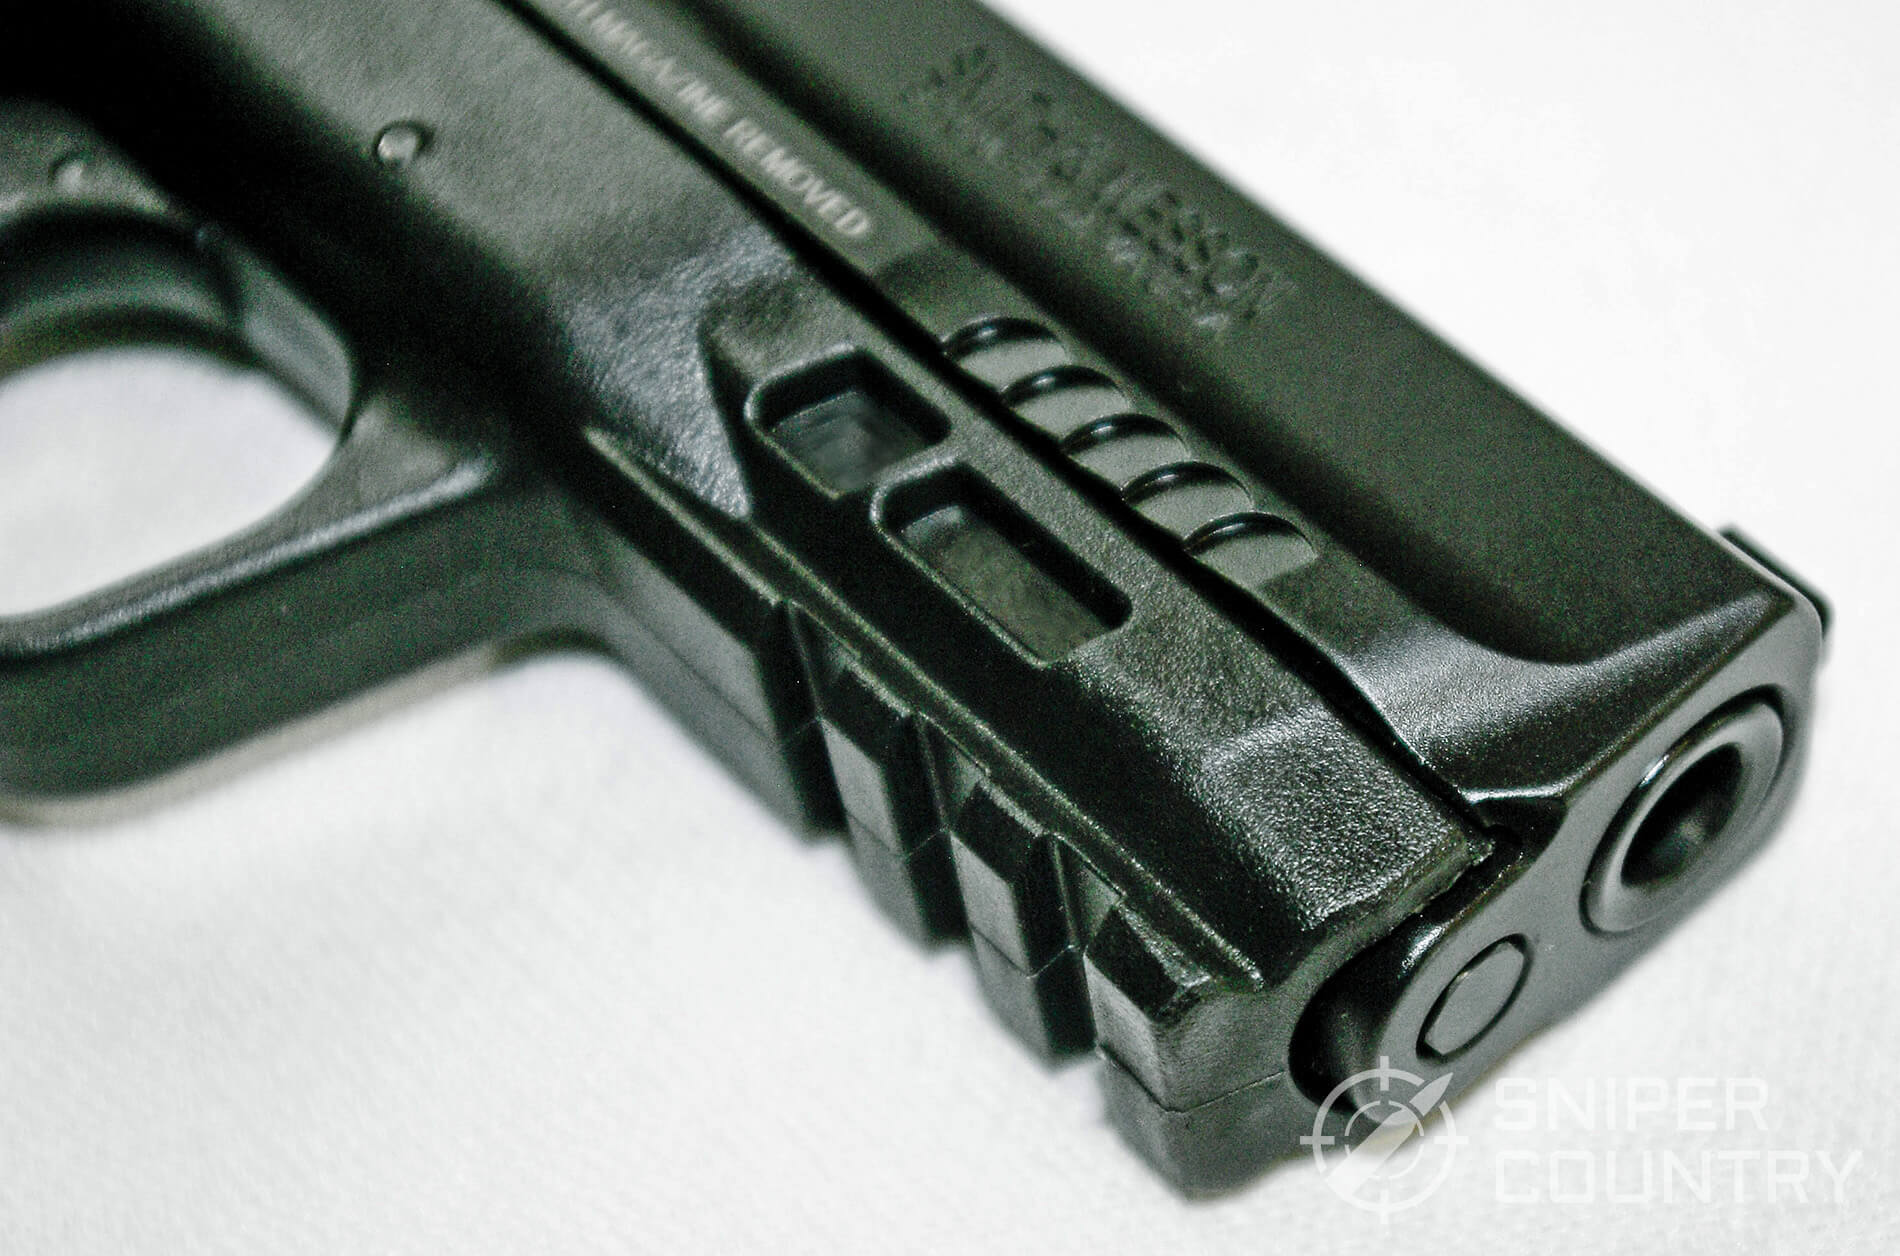 Smith & Wesson M&P 9C 2.0 Muzzle